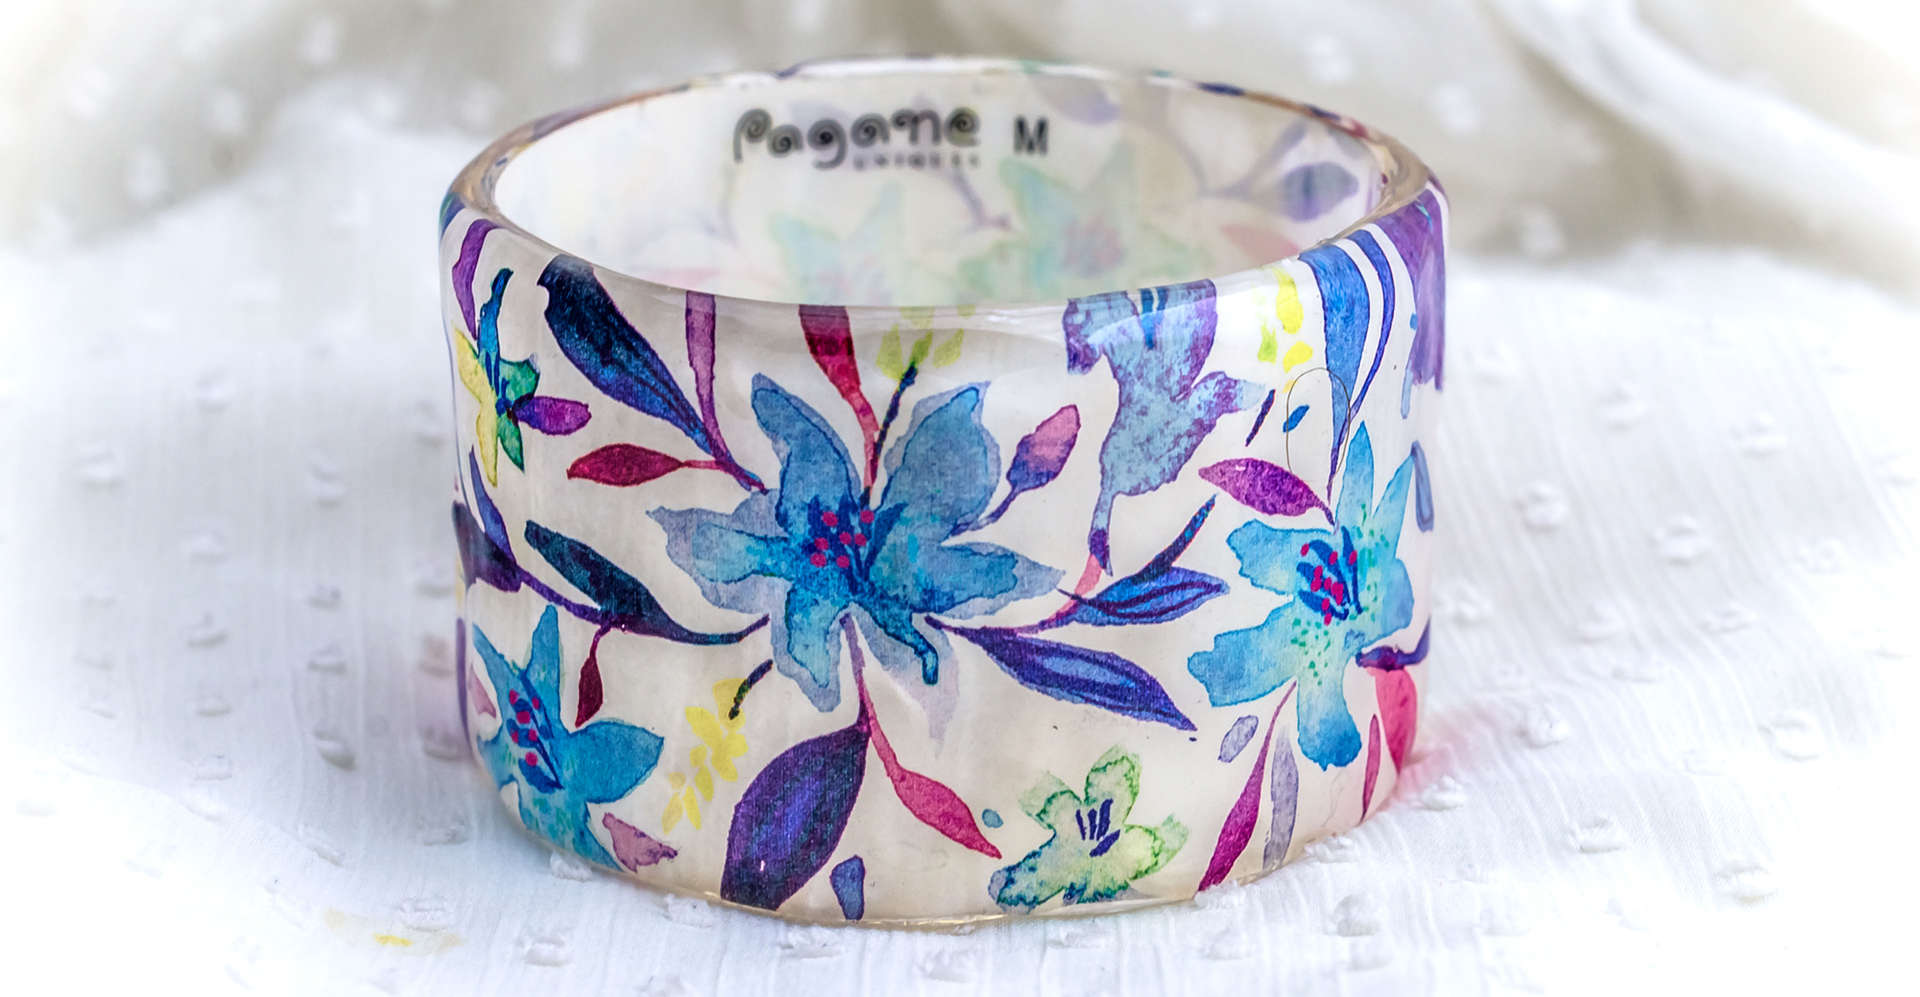 High Resin Bangle By PAGANE uniques (16)